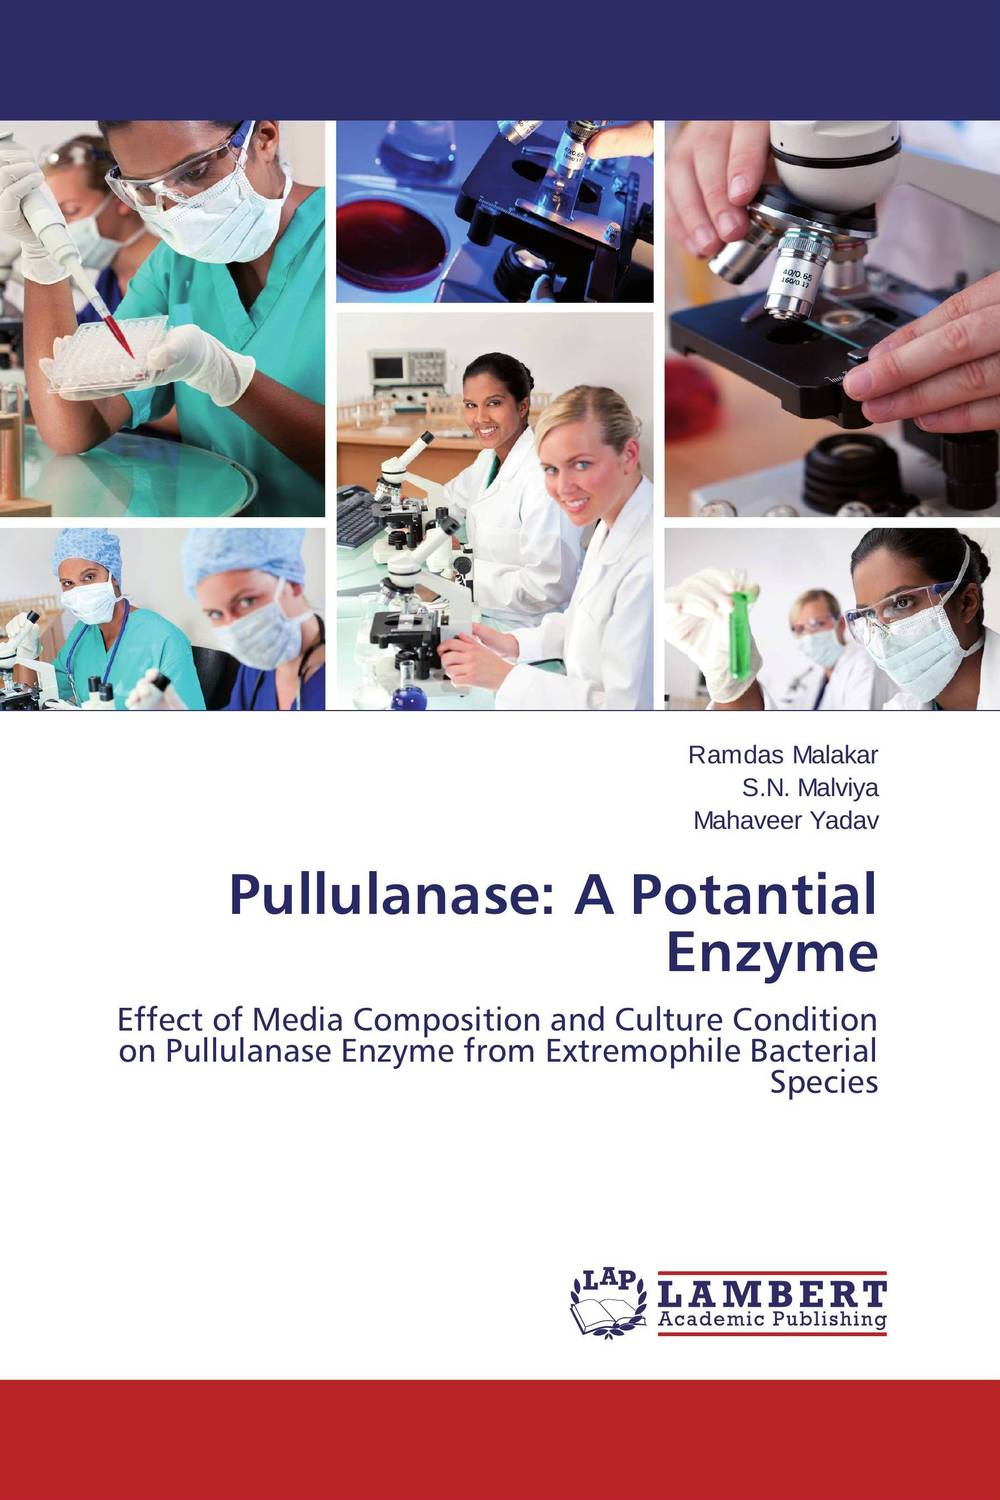 Pullulanase: A Potantial Enzyme enzyme applications in textile processing & finishing